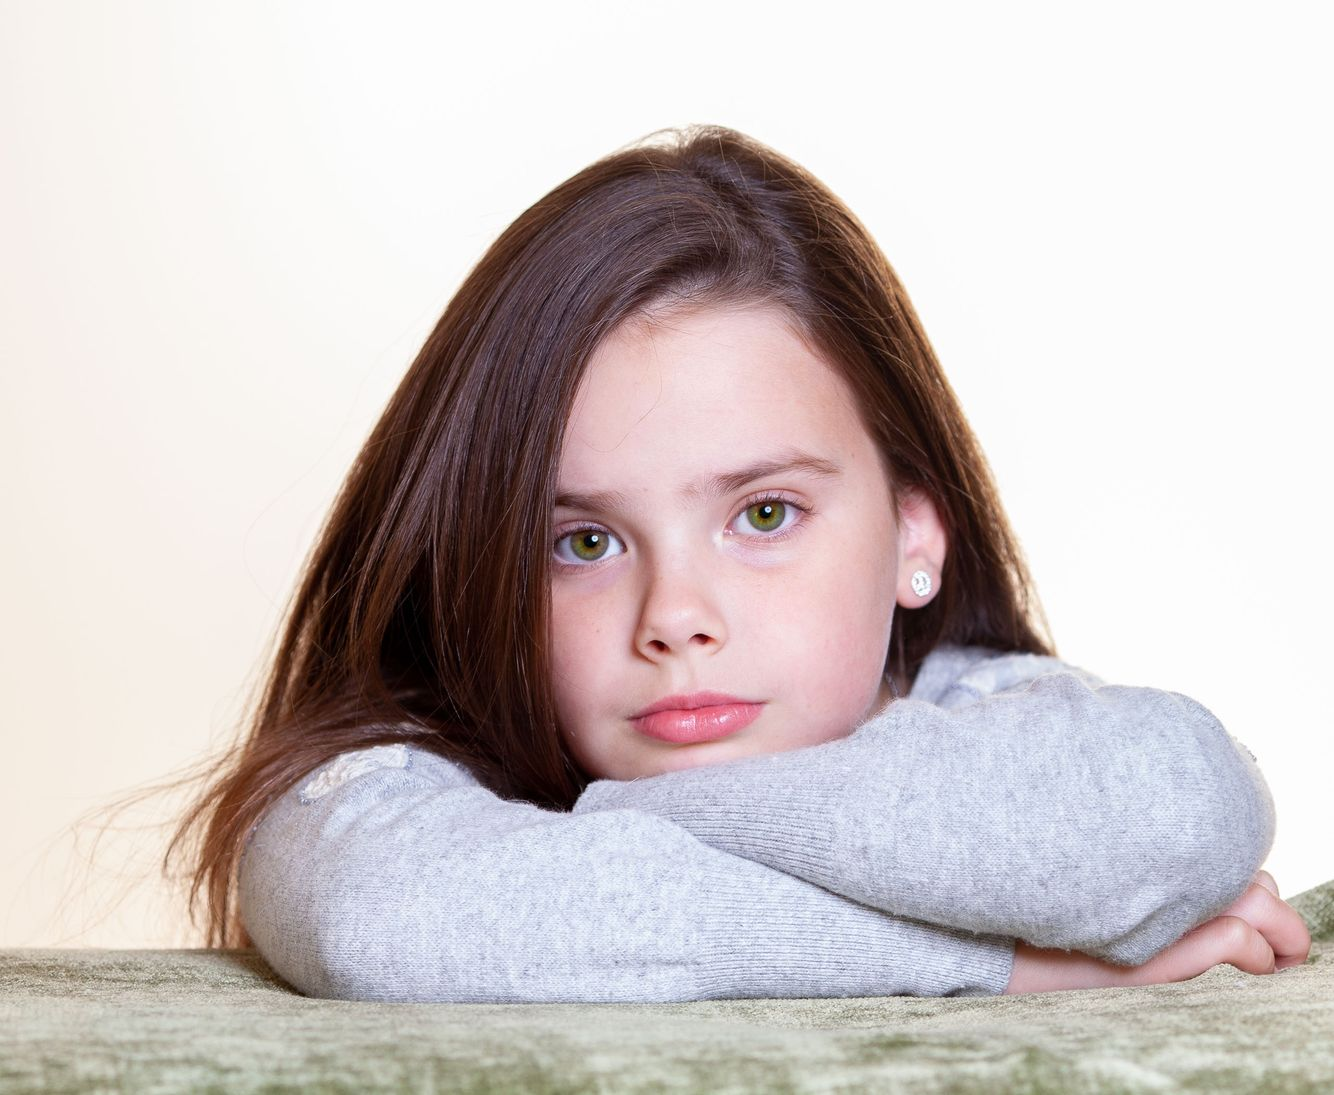 Female child leaning on arms